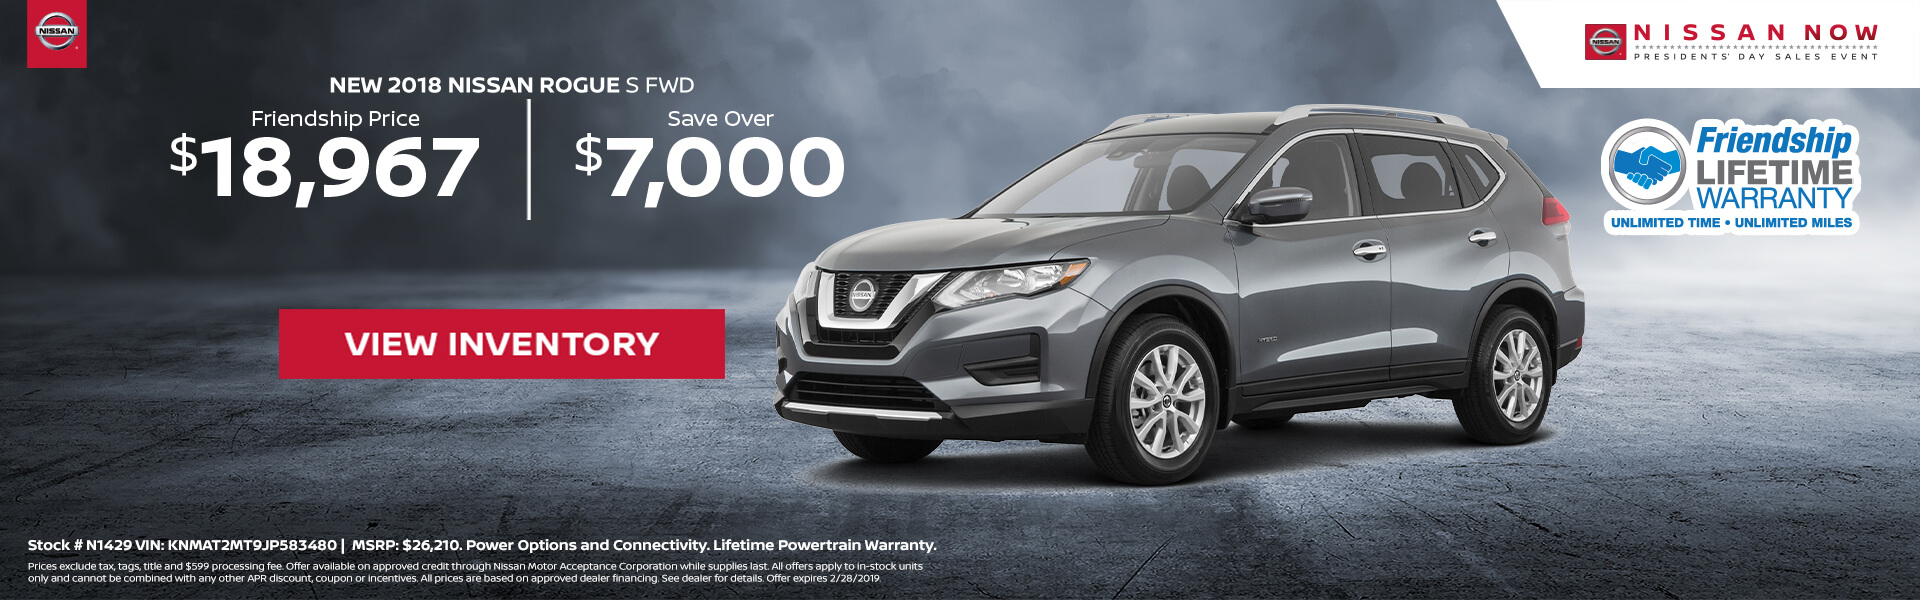 Nissan Rogue $18,967 Purchase